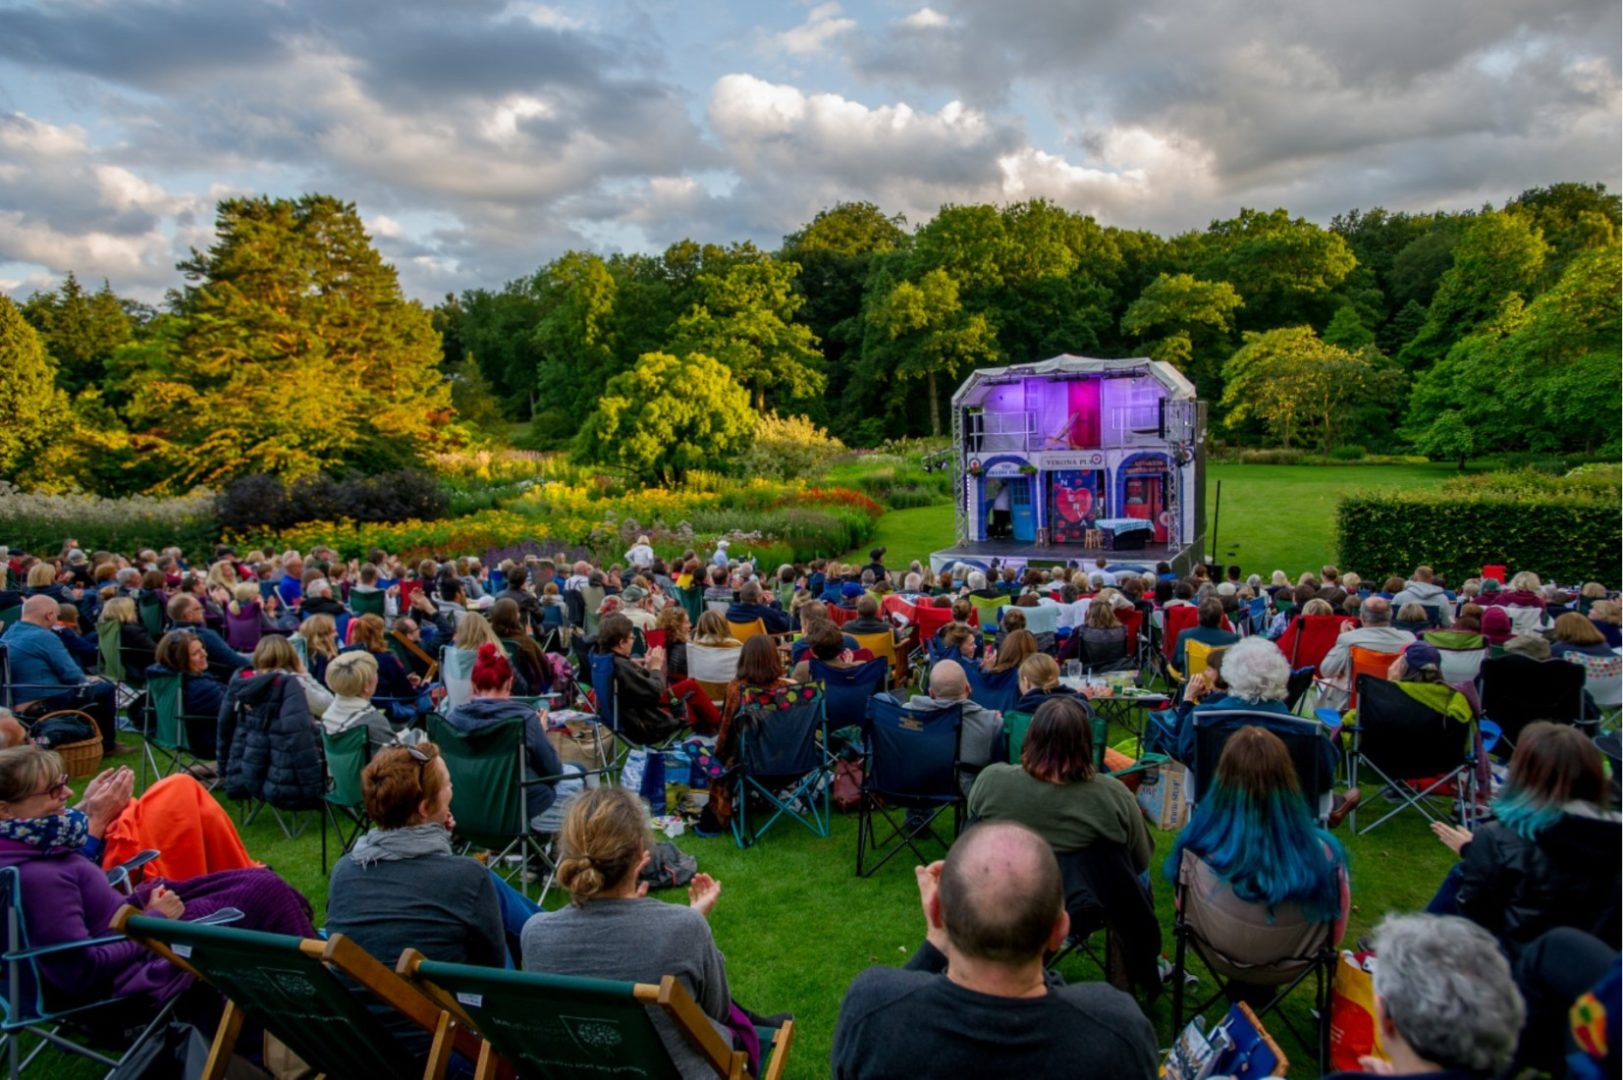 harrogate events, what's on, theatre